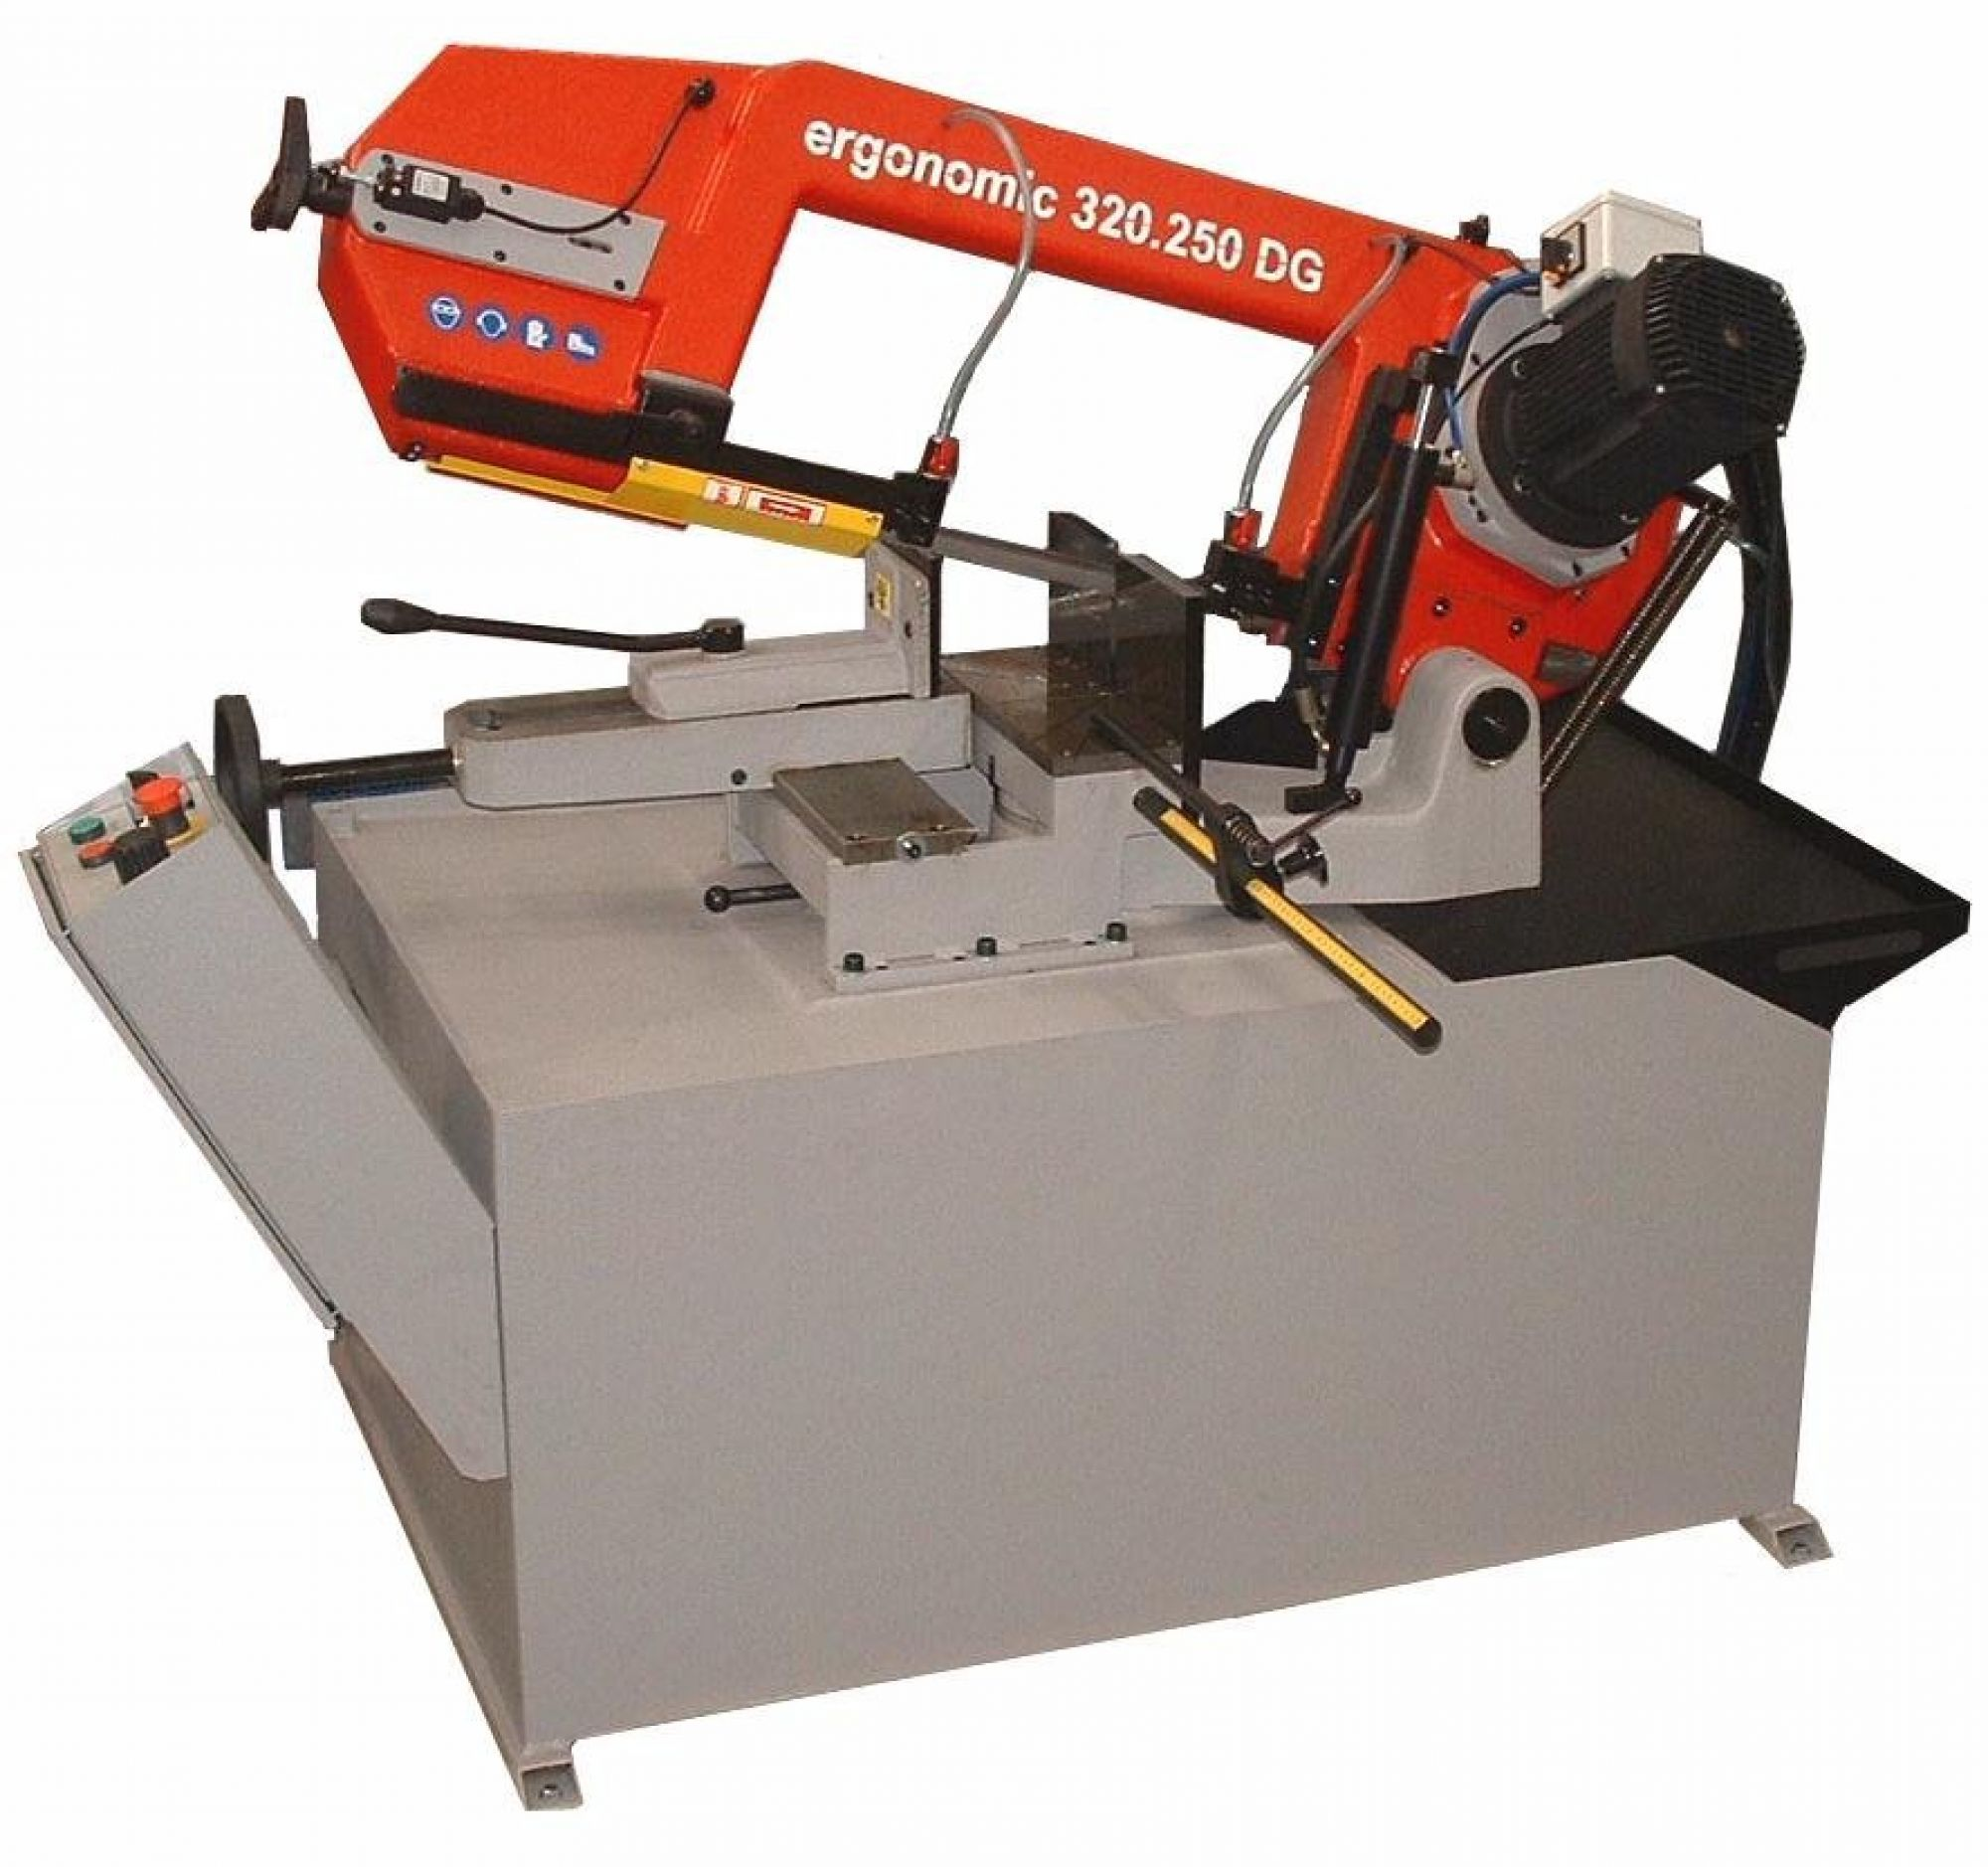 SD-320x250DG Manual, Double Mitre Bandsaw